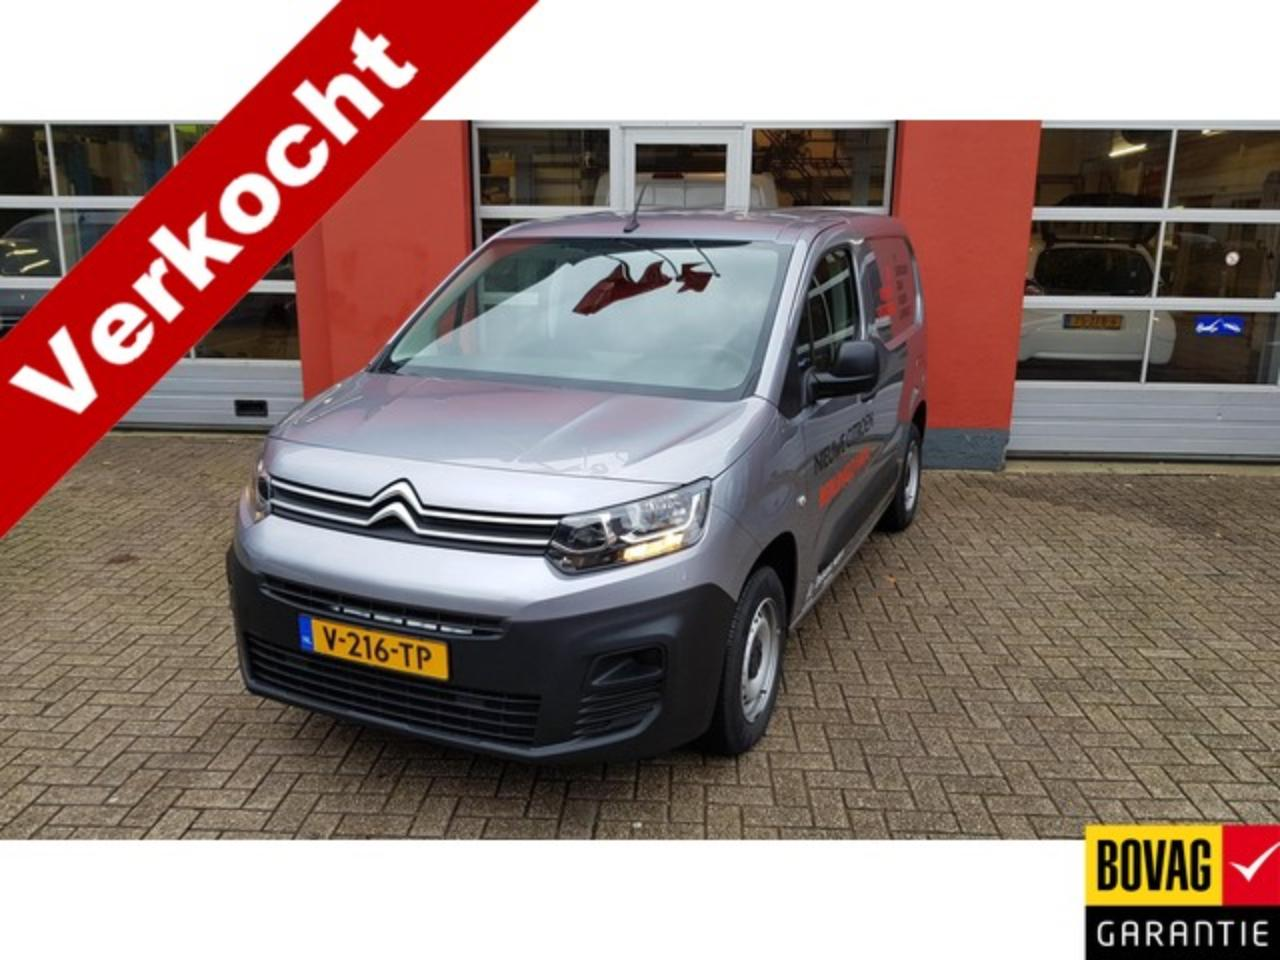 Citroën Berlingo 1.6 HDI 55KW CONTROL Airco/Betimmering